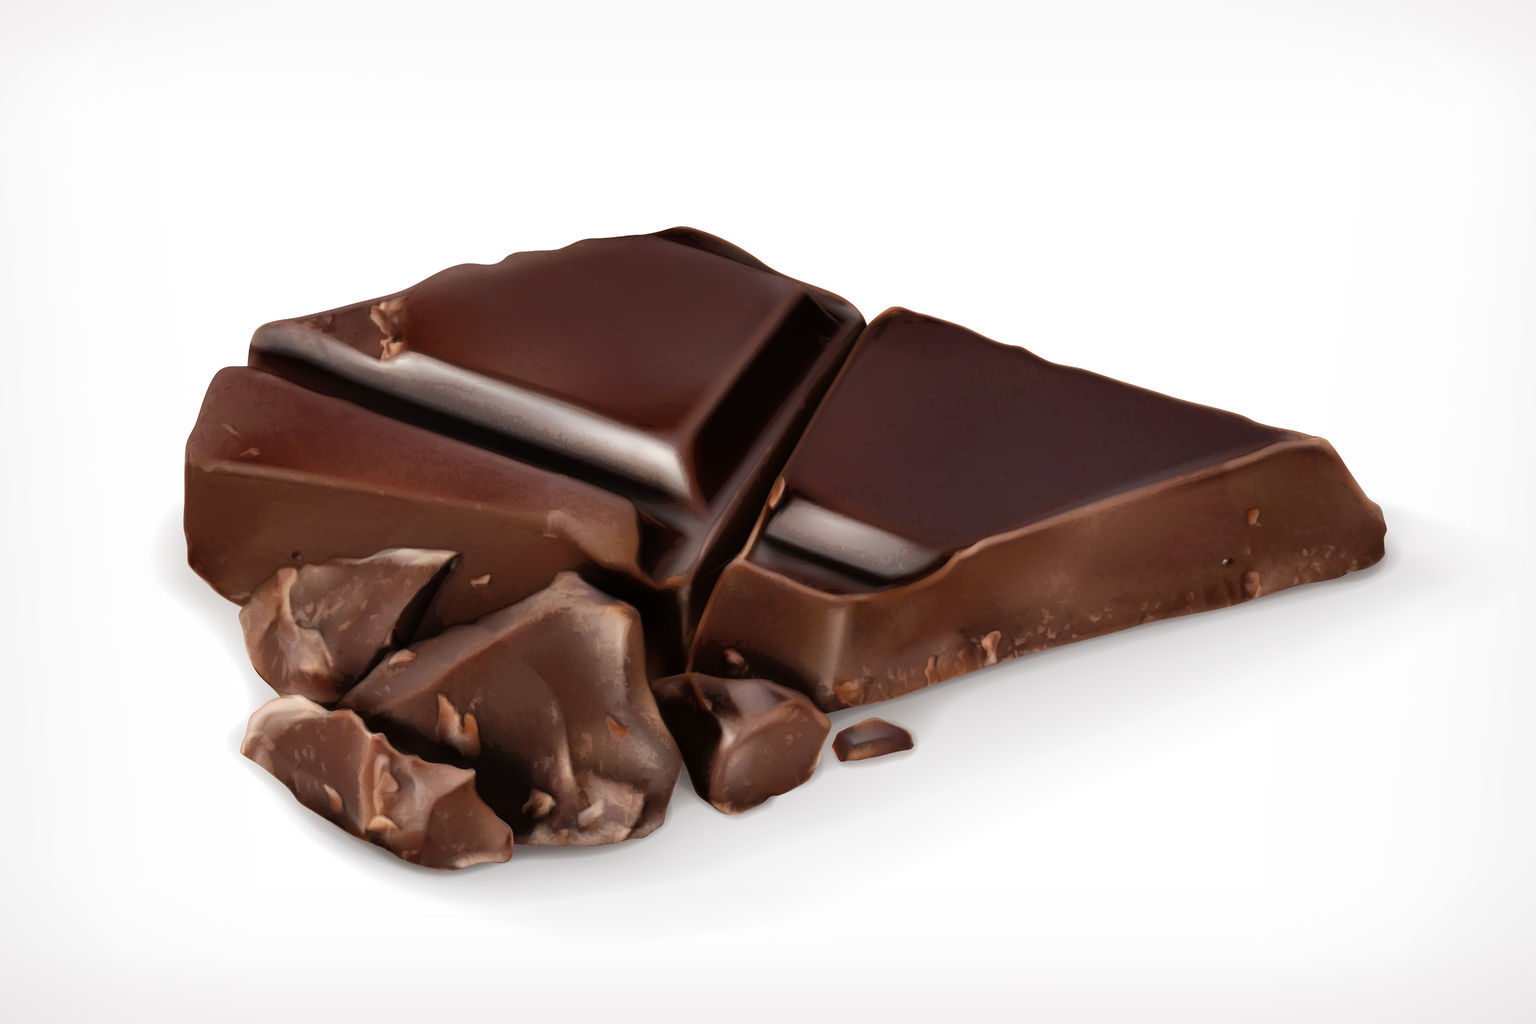 chocolate benefits heart health and blood pressure in healthy young adults